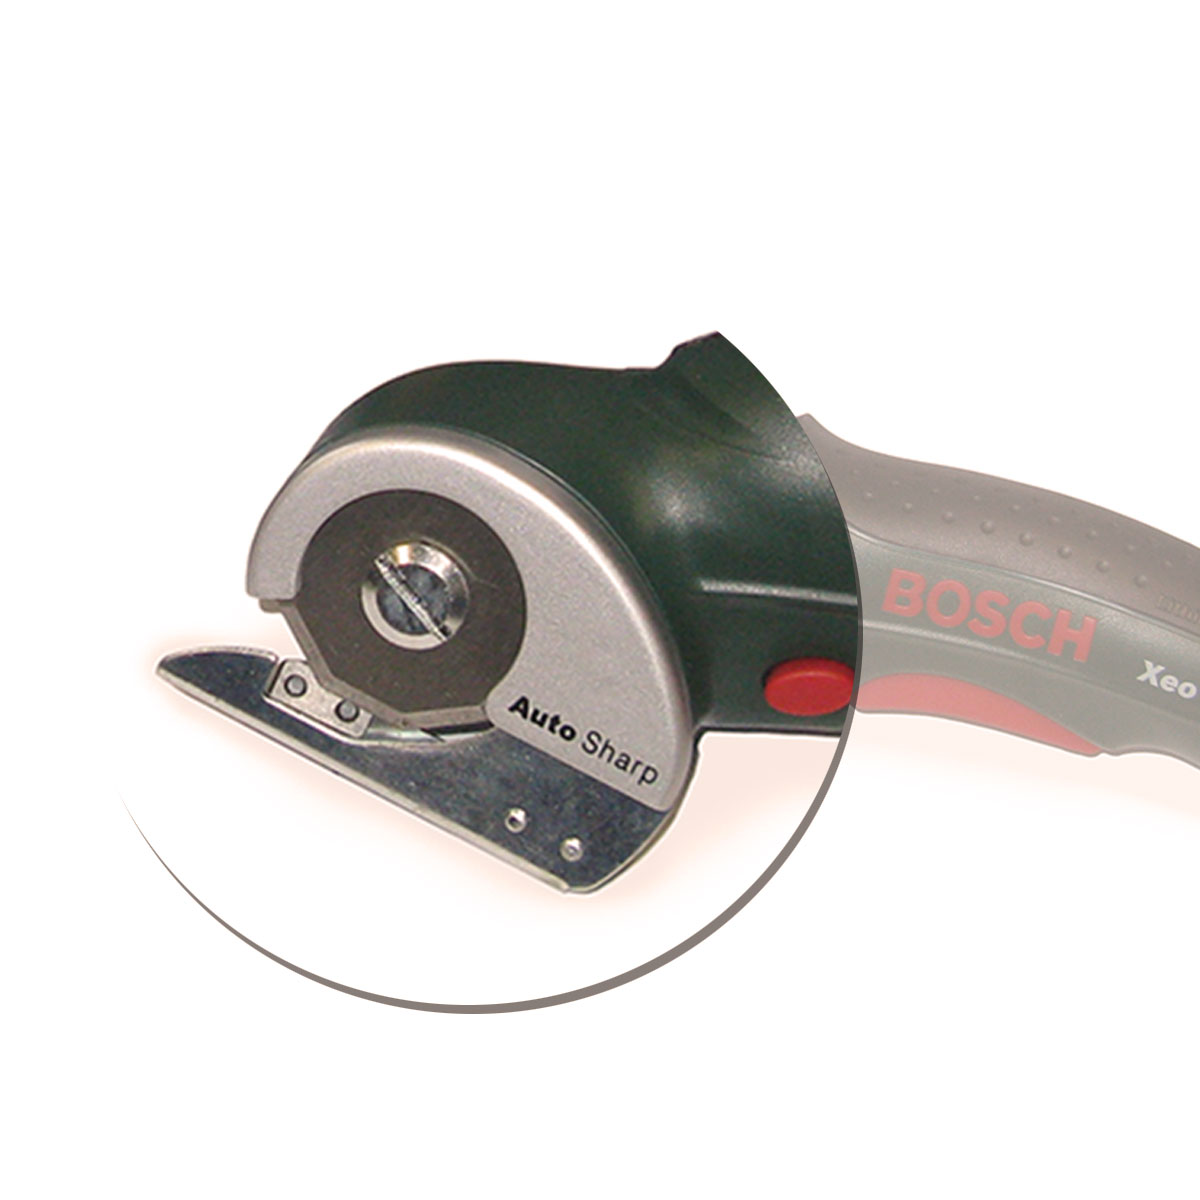 blade for battery foil cutter